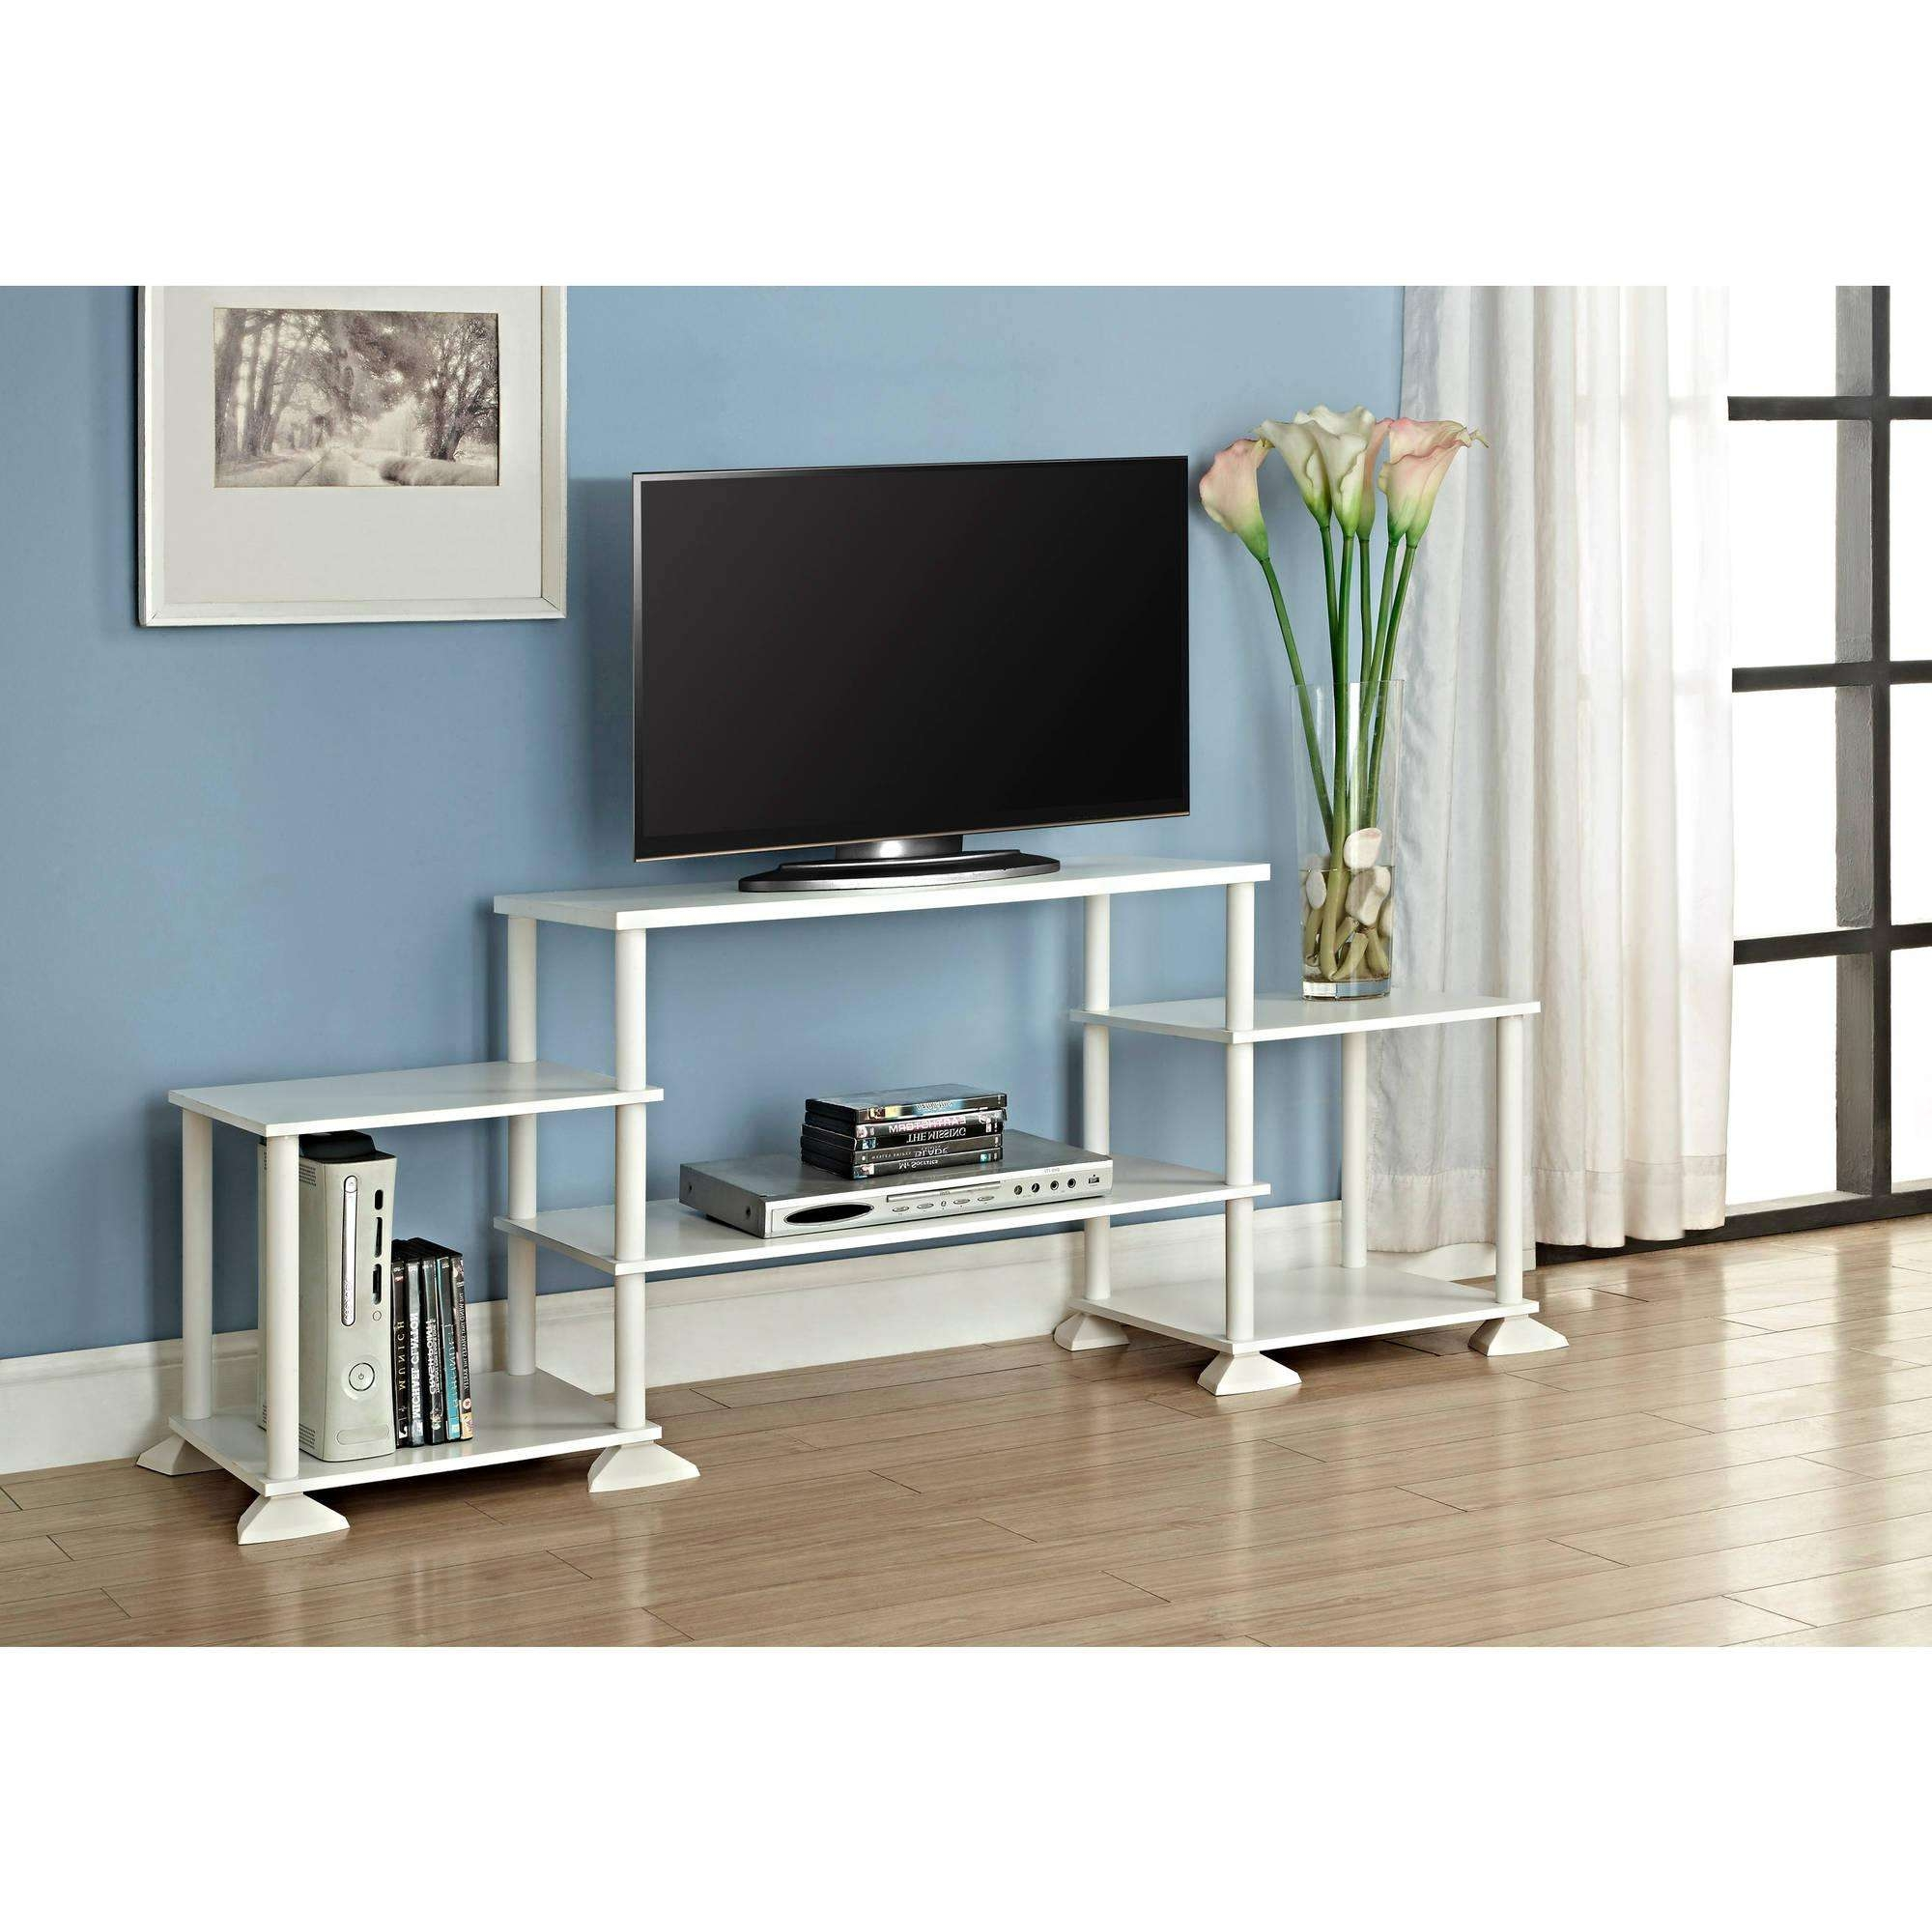 Tv Stand : Corner Tv Standnch Unforgettablemagenspirations Stands Pertaining To Corner Tv Stands 40 Inch (View 17 of 20)